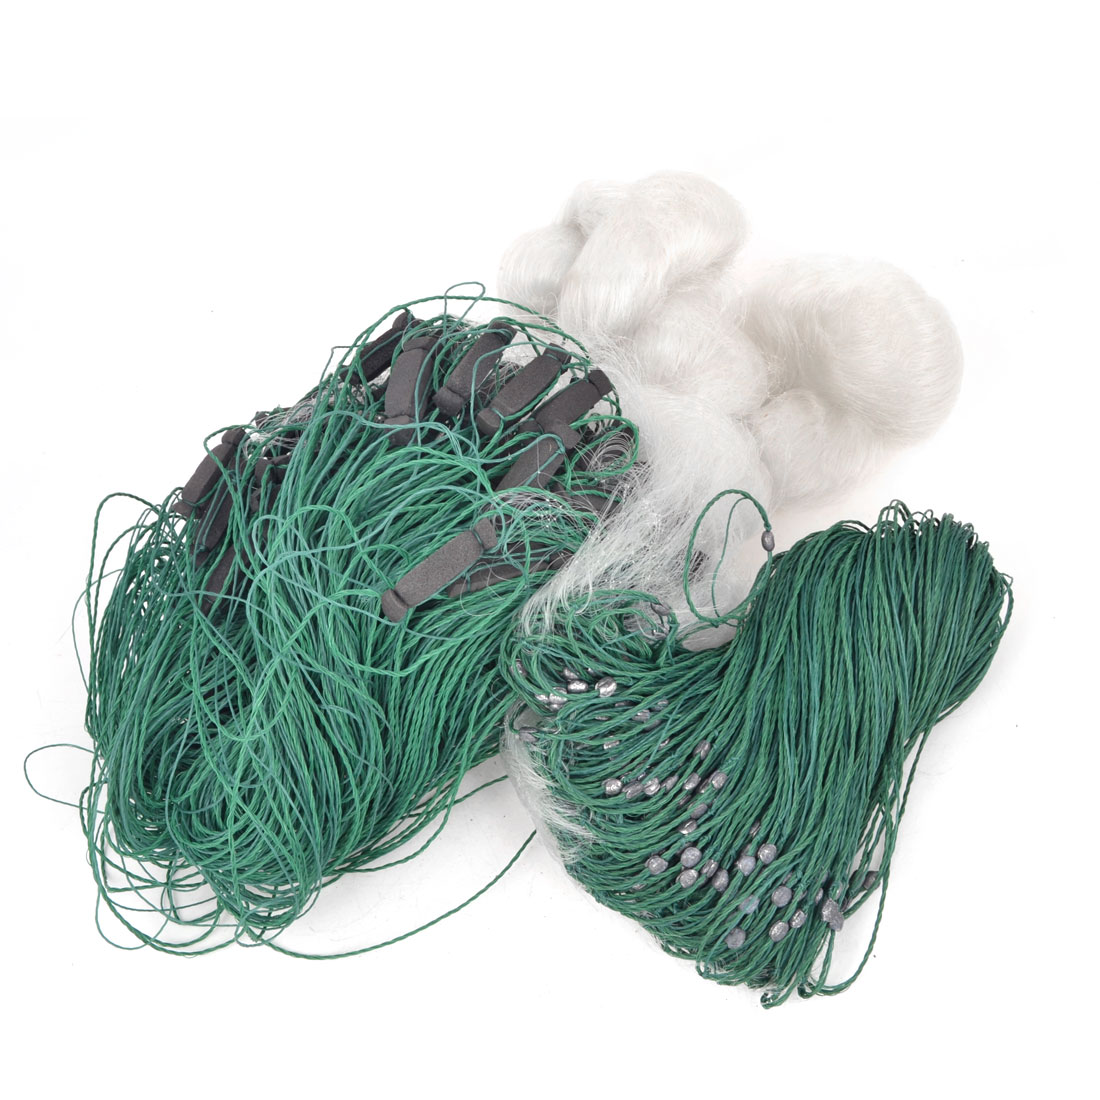 Monofilament 3cm Hole Fishing Gear Fish Gill Net 85M x 3Meters